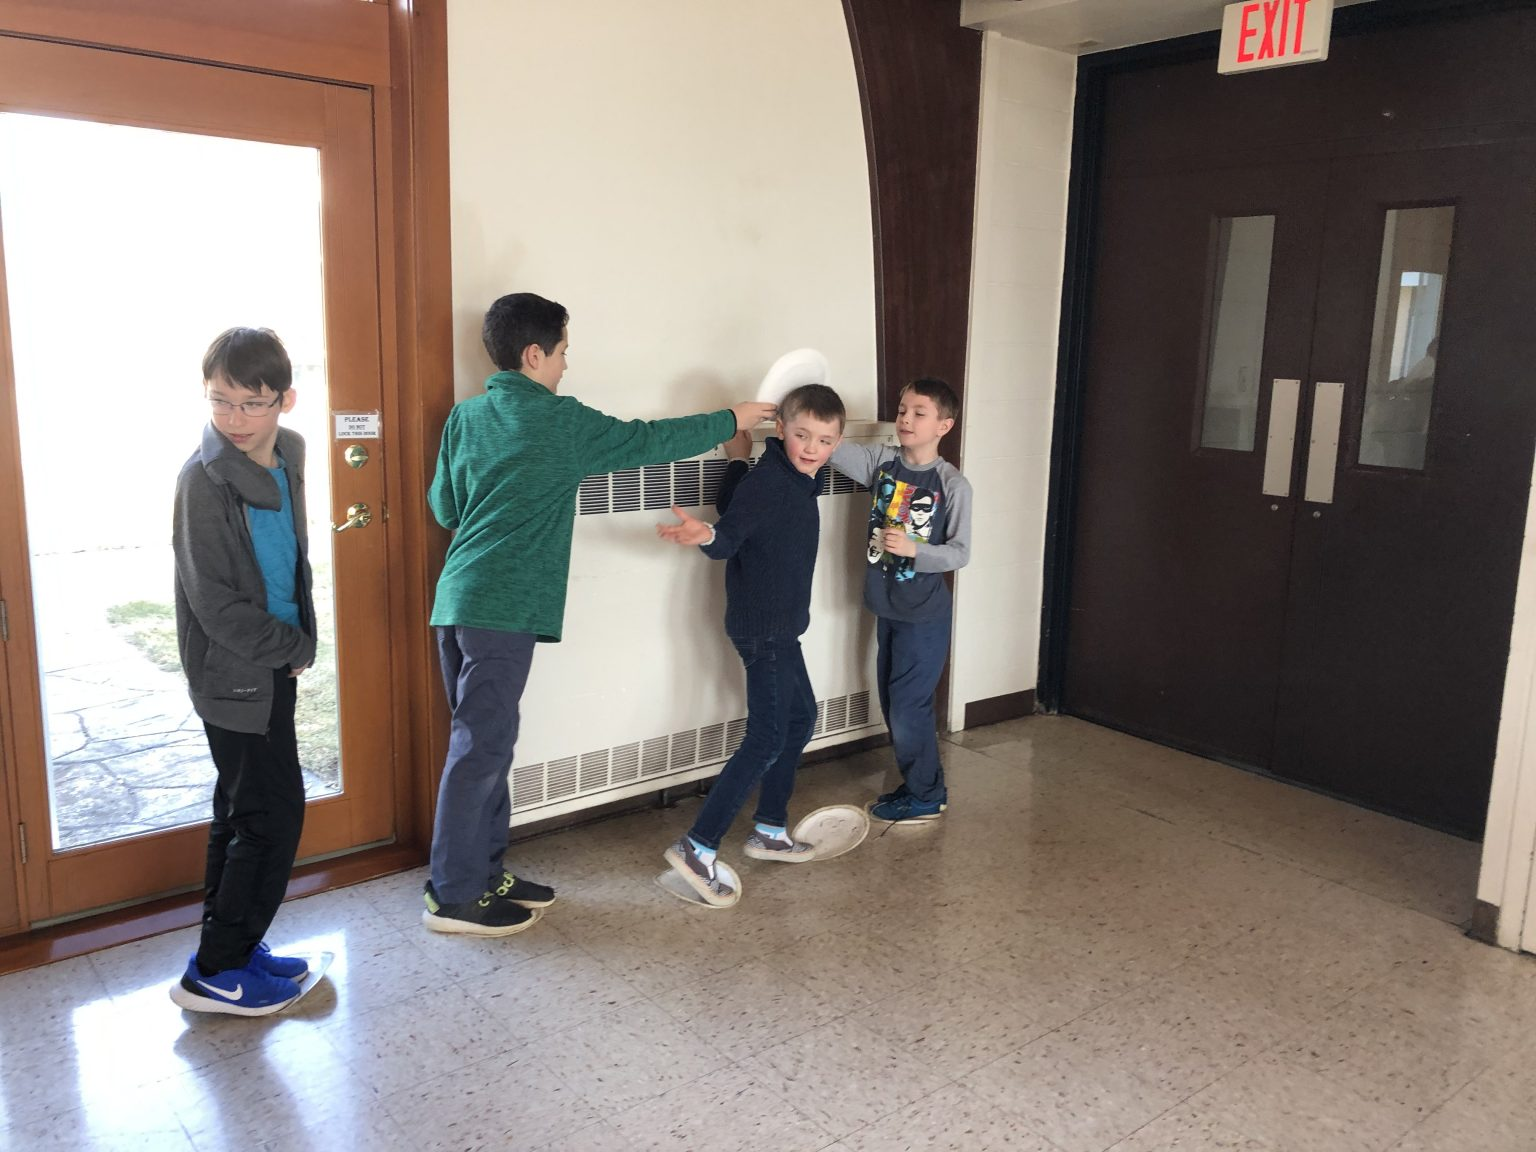 Four boys playing a game